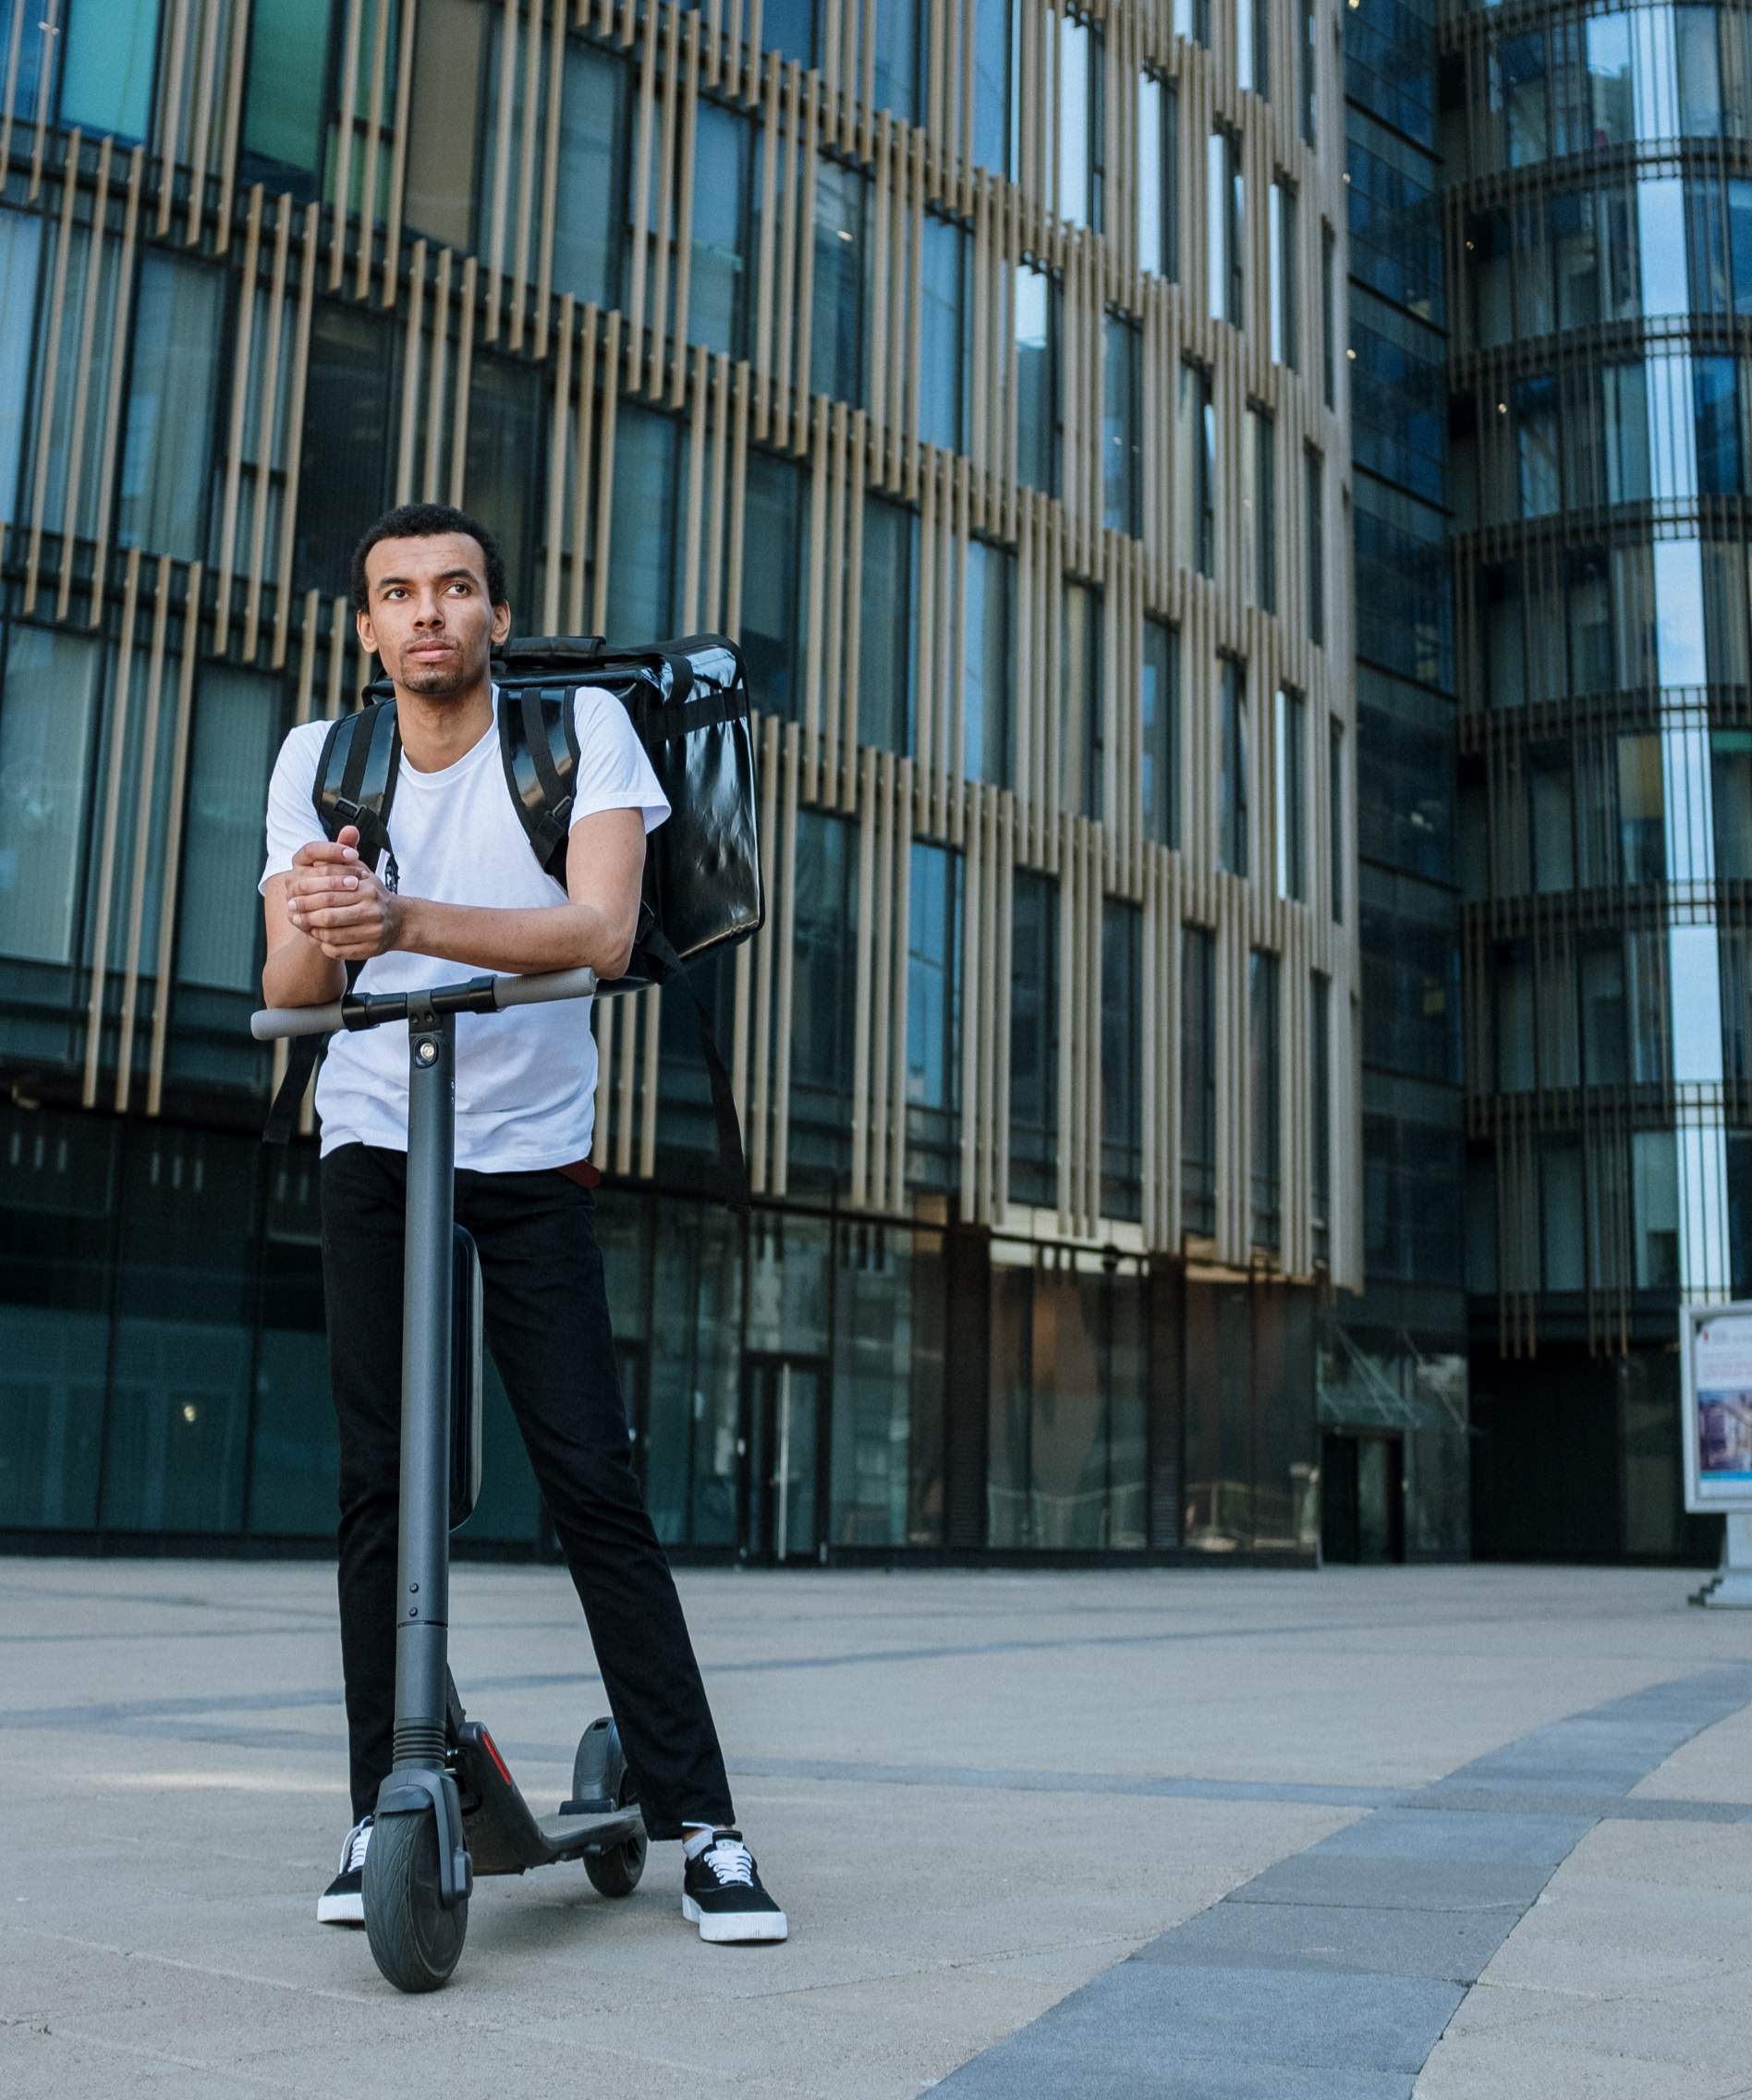 E-scooter insurance | What's the deal?